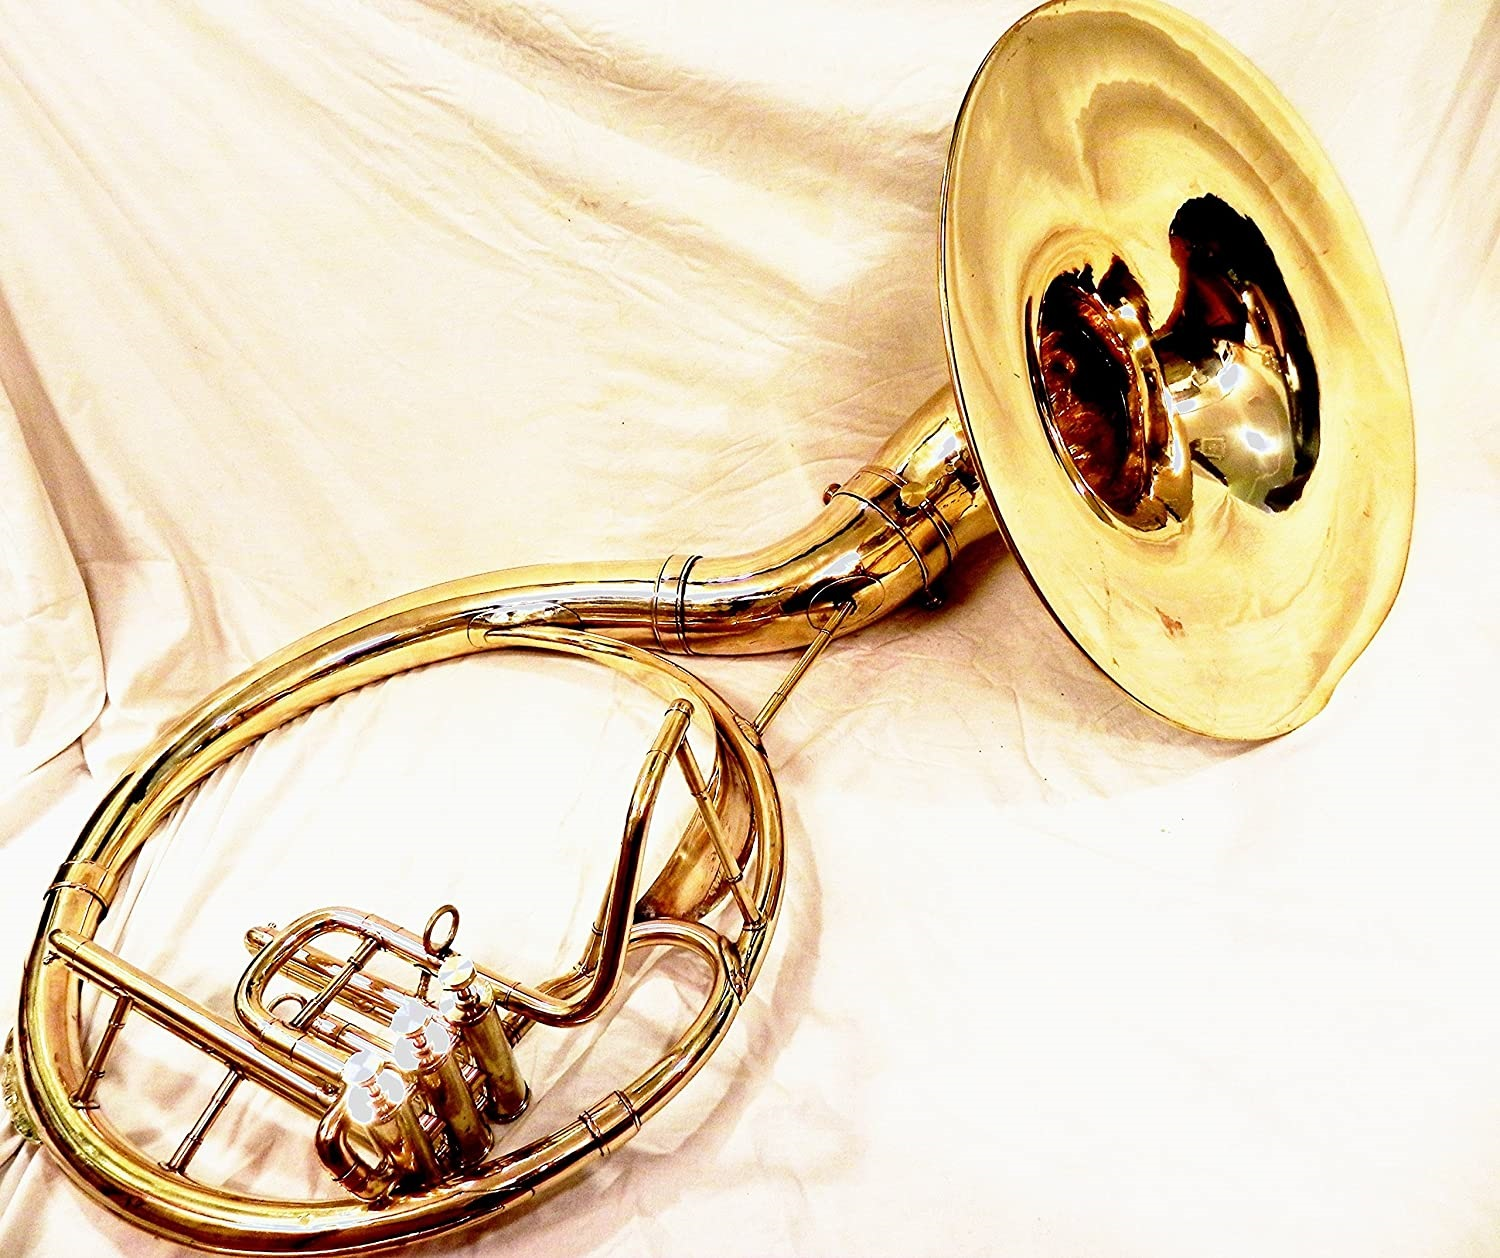 INDIAN HANDMADE BRASS FINISH 22 SOUSAPHONE BRASS MADE TUBA MOUTH PIECE WITH BAG